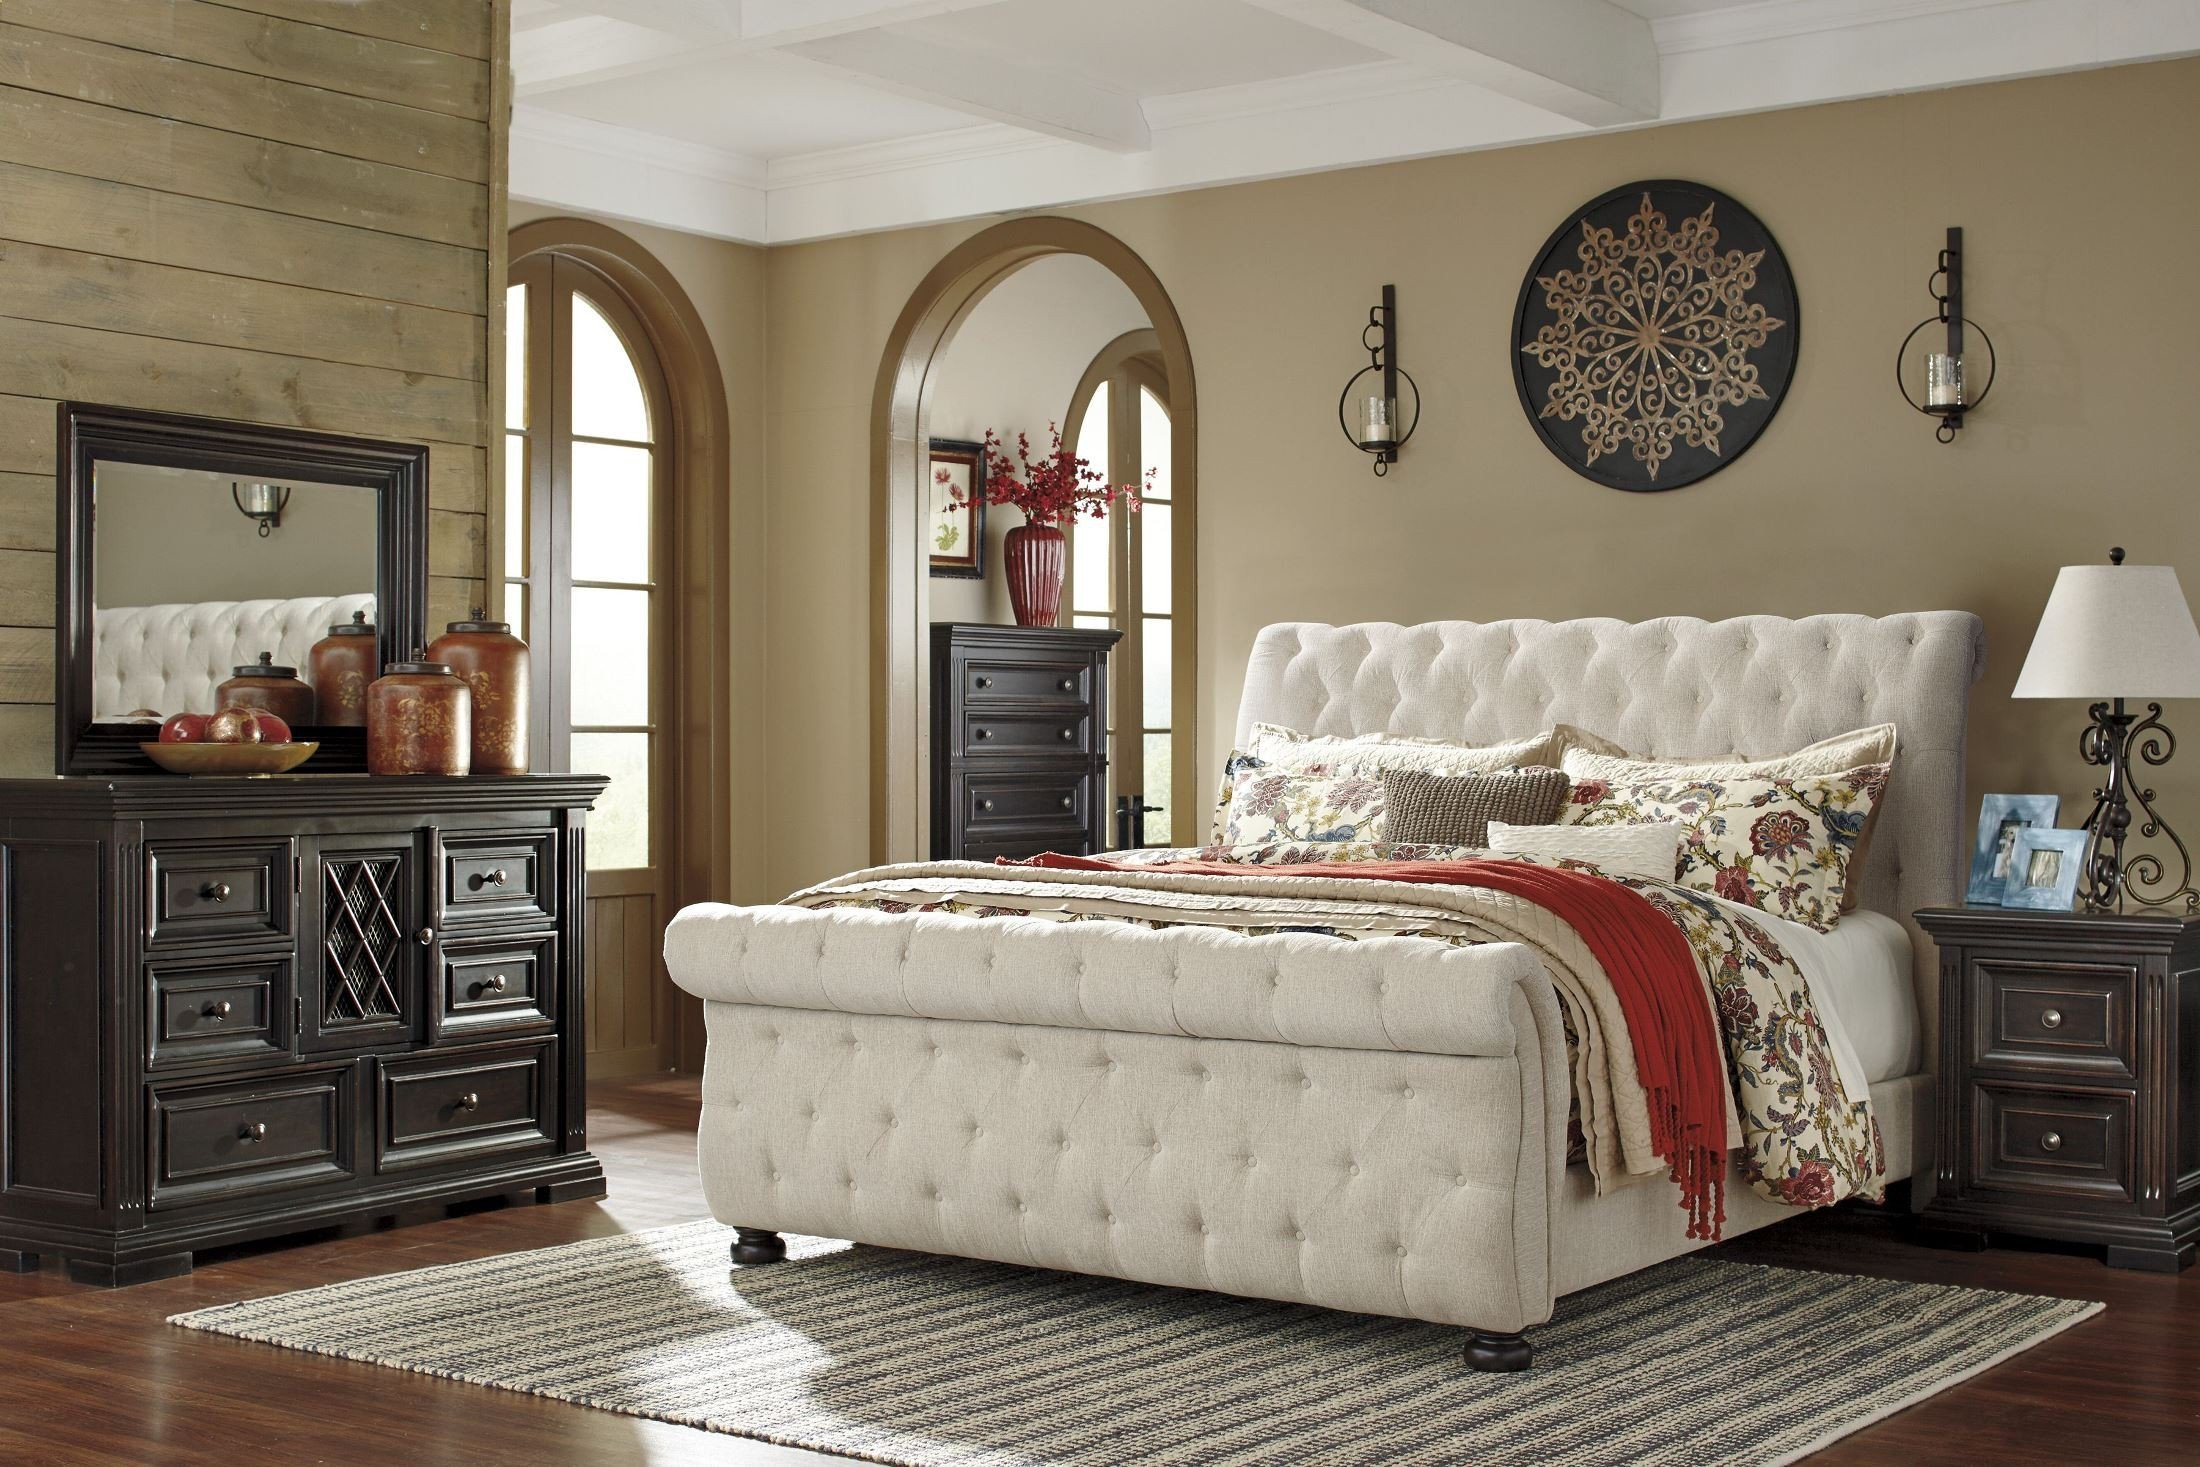 Cortina Sleigh Bedroom Set New Bedroom Royal Queen Sleigh Bed Frame with Elegant Creative